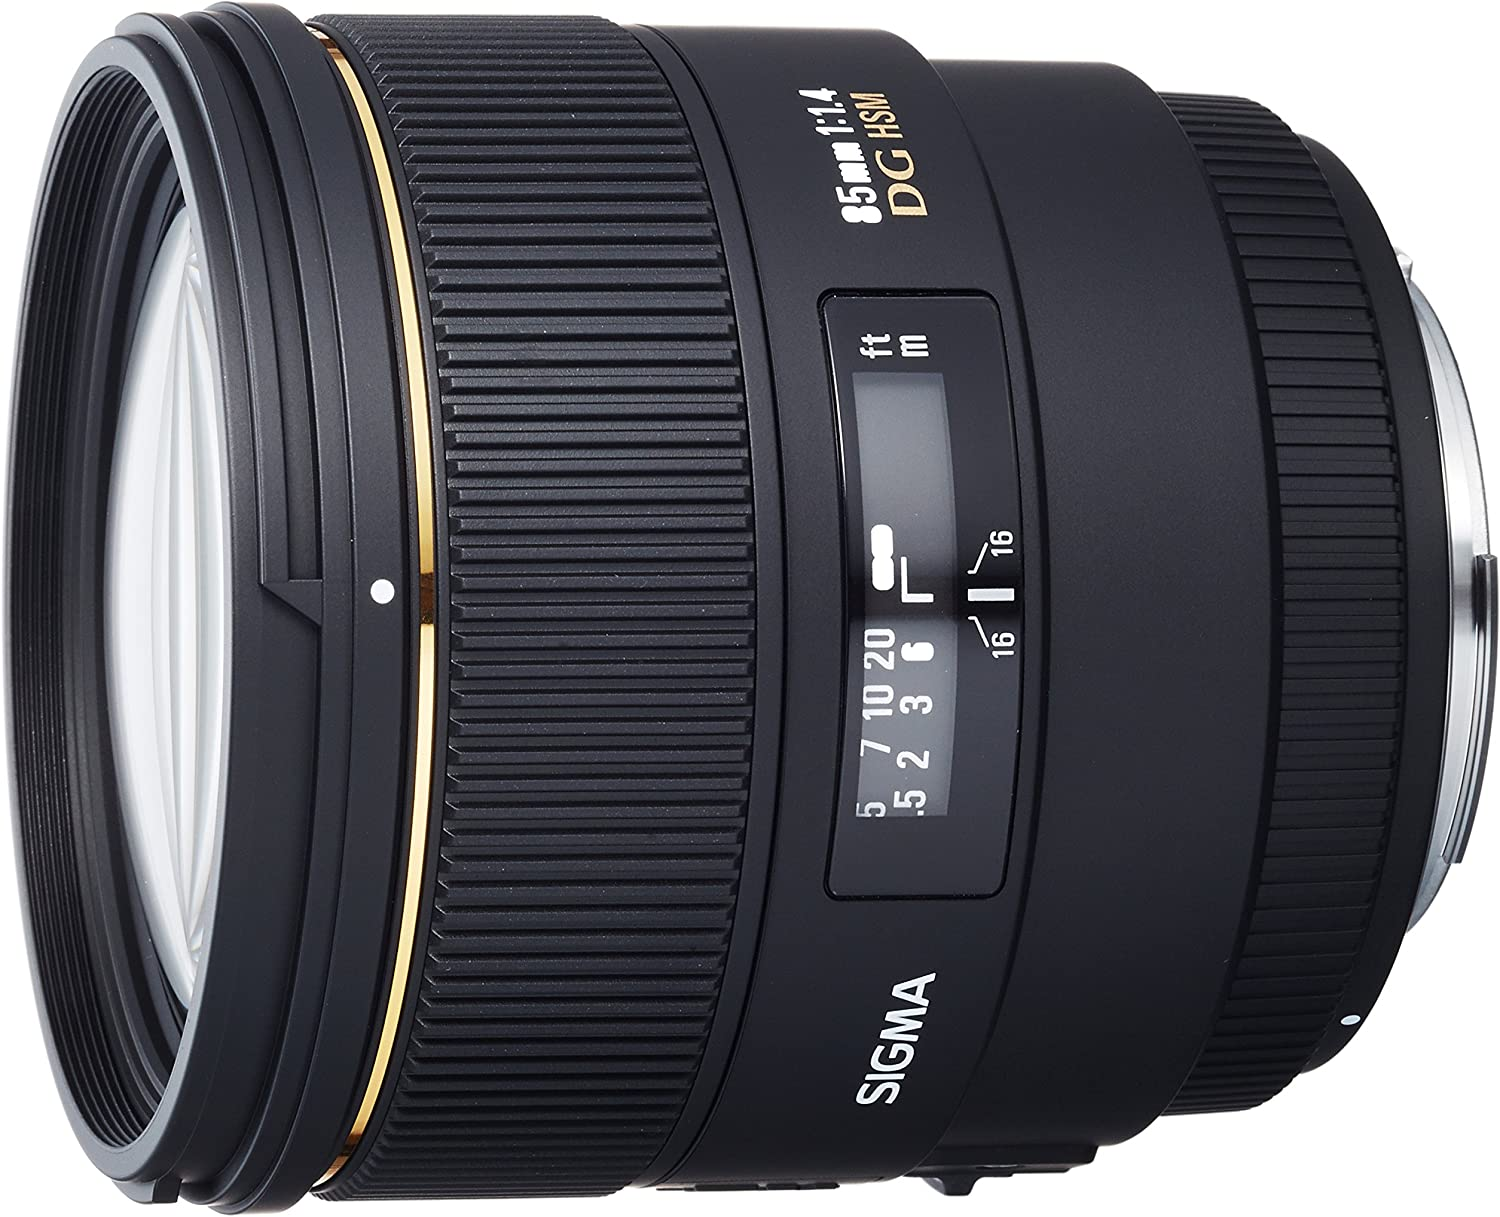 Sigma 85mm f/1.4 EX DG HSM Large Aperture Medium Telephoto Prime Lens for Canon Digital SLR Cameras